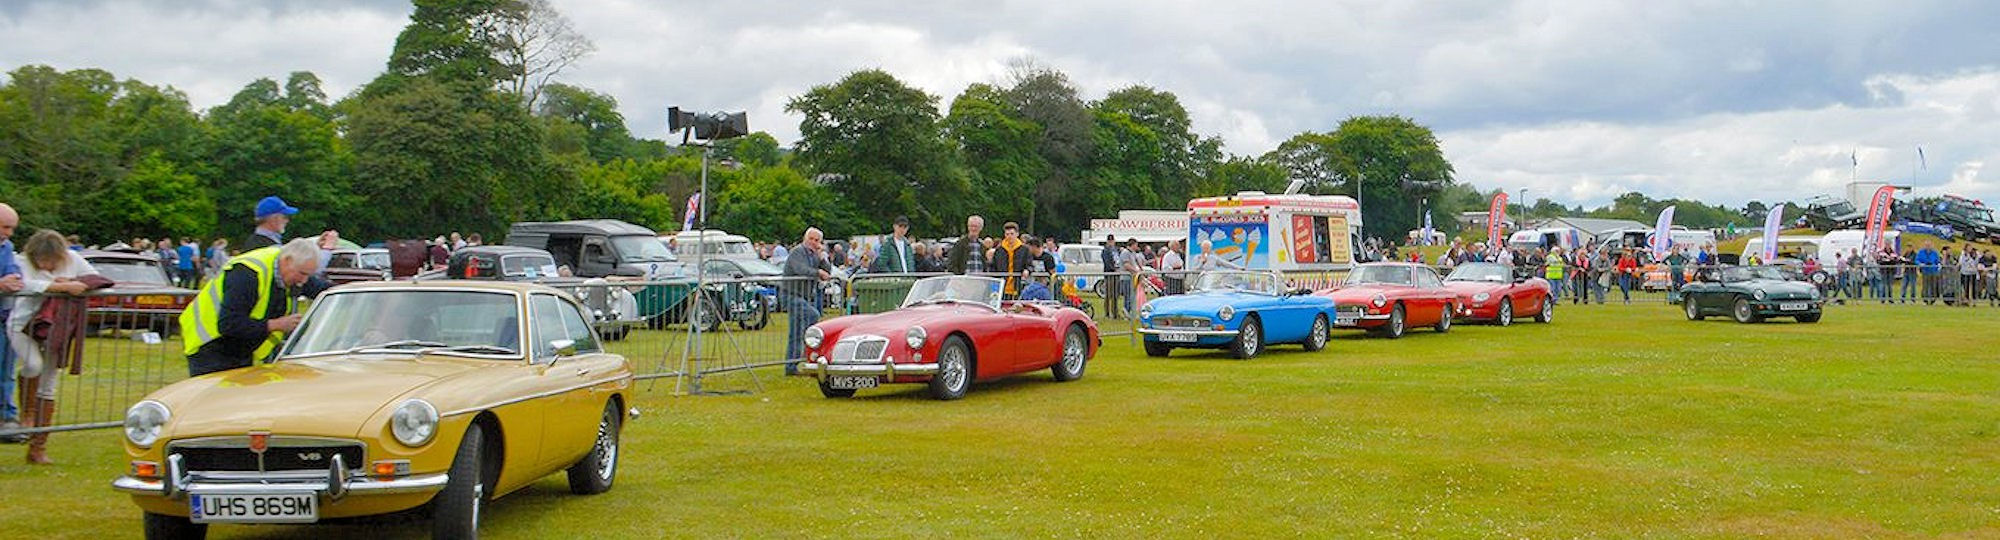 Tain Vintage Car Rally